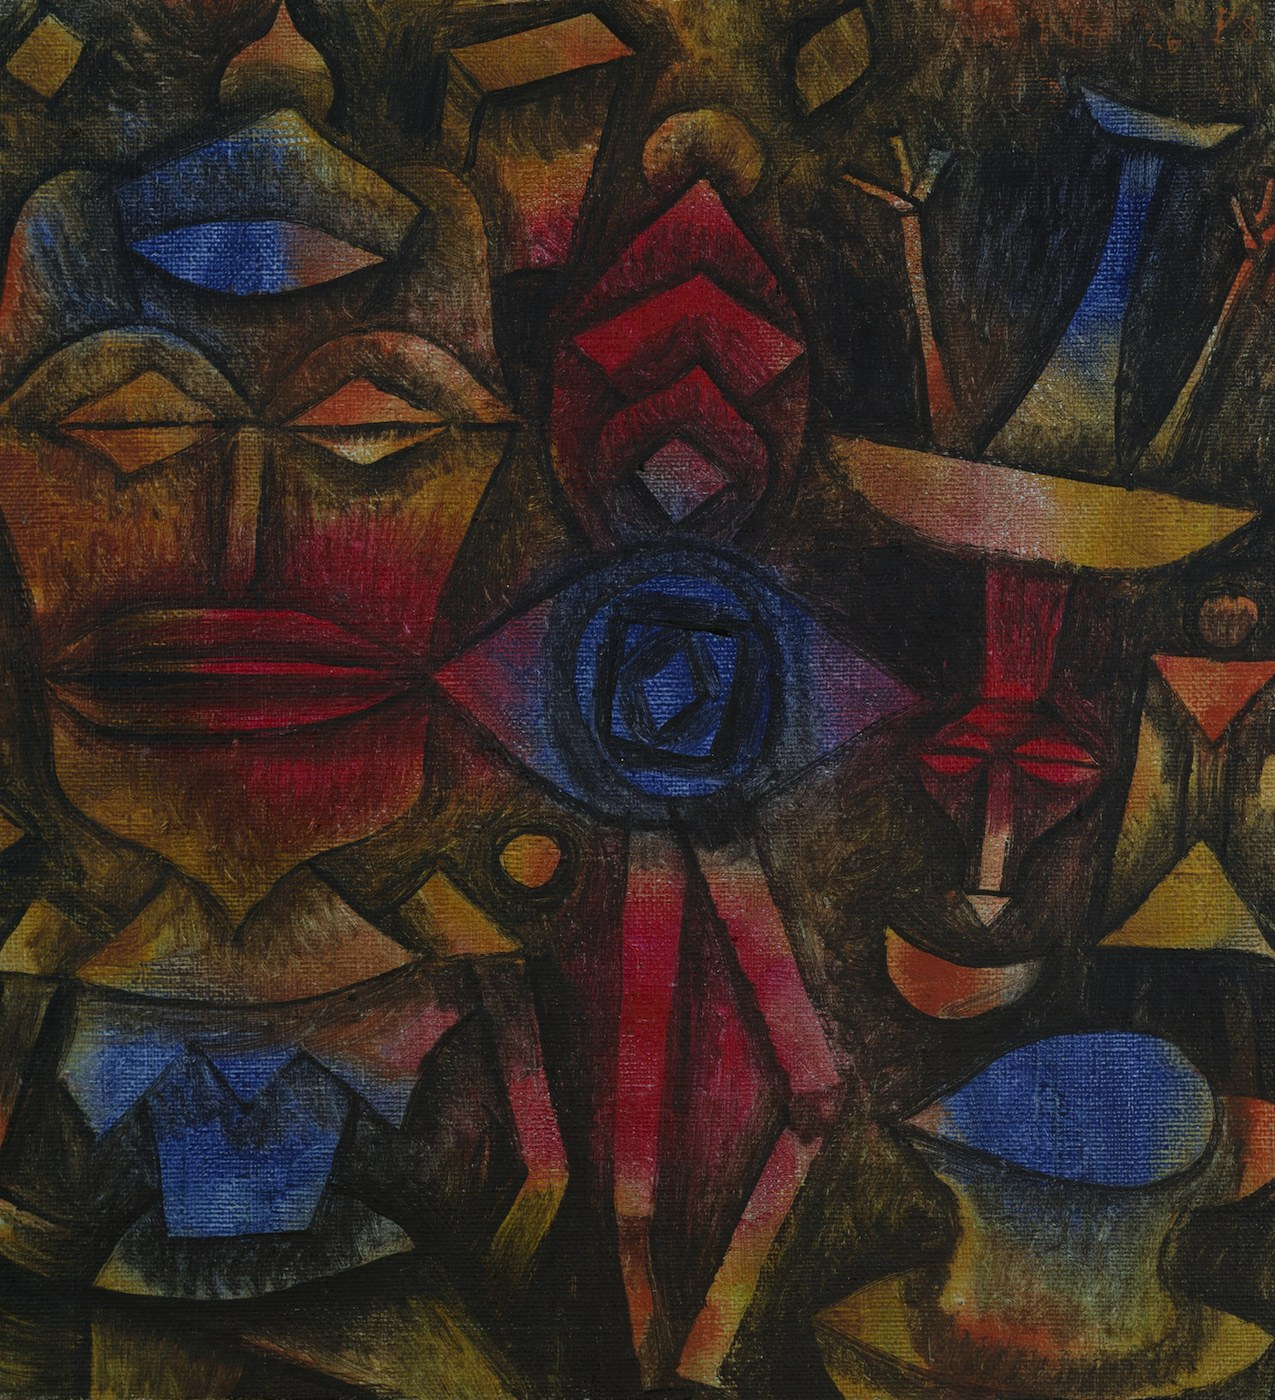 Tableaux de Paul klee